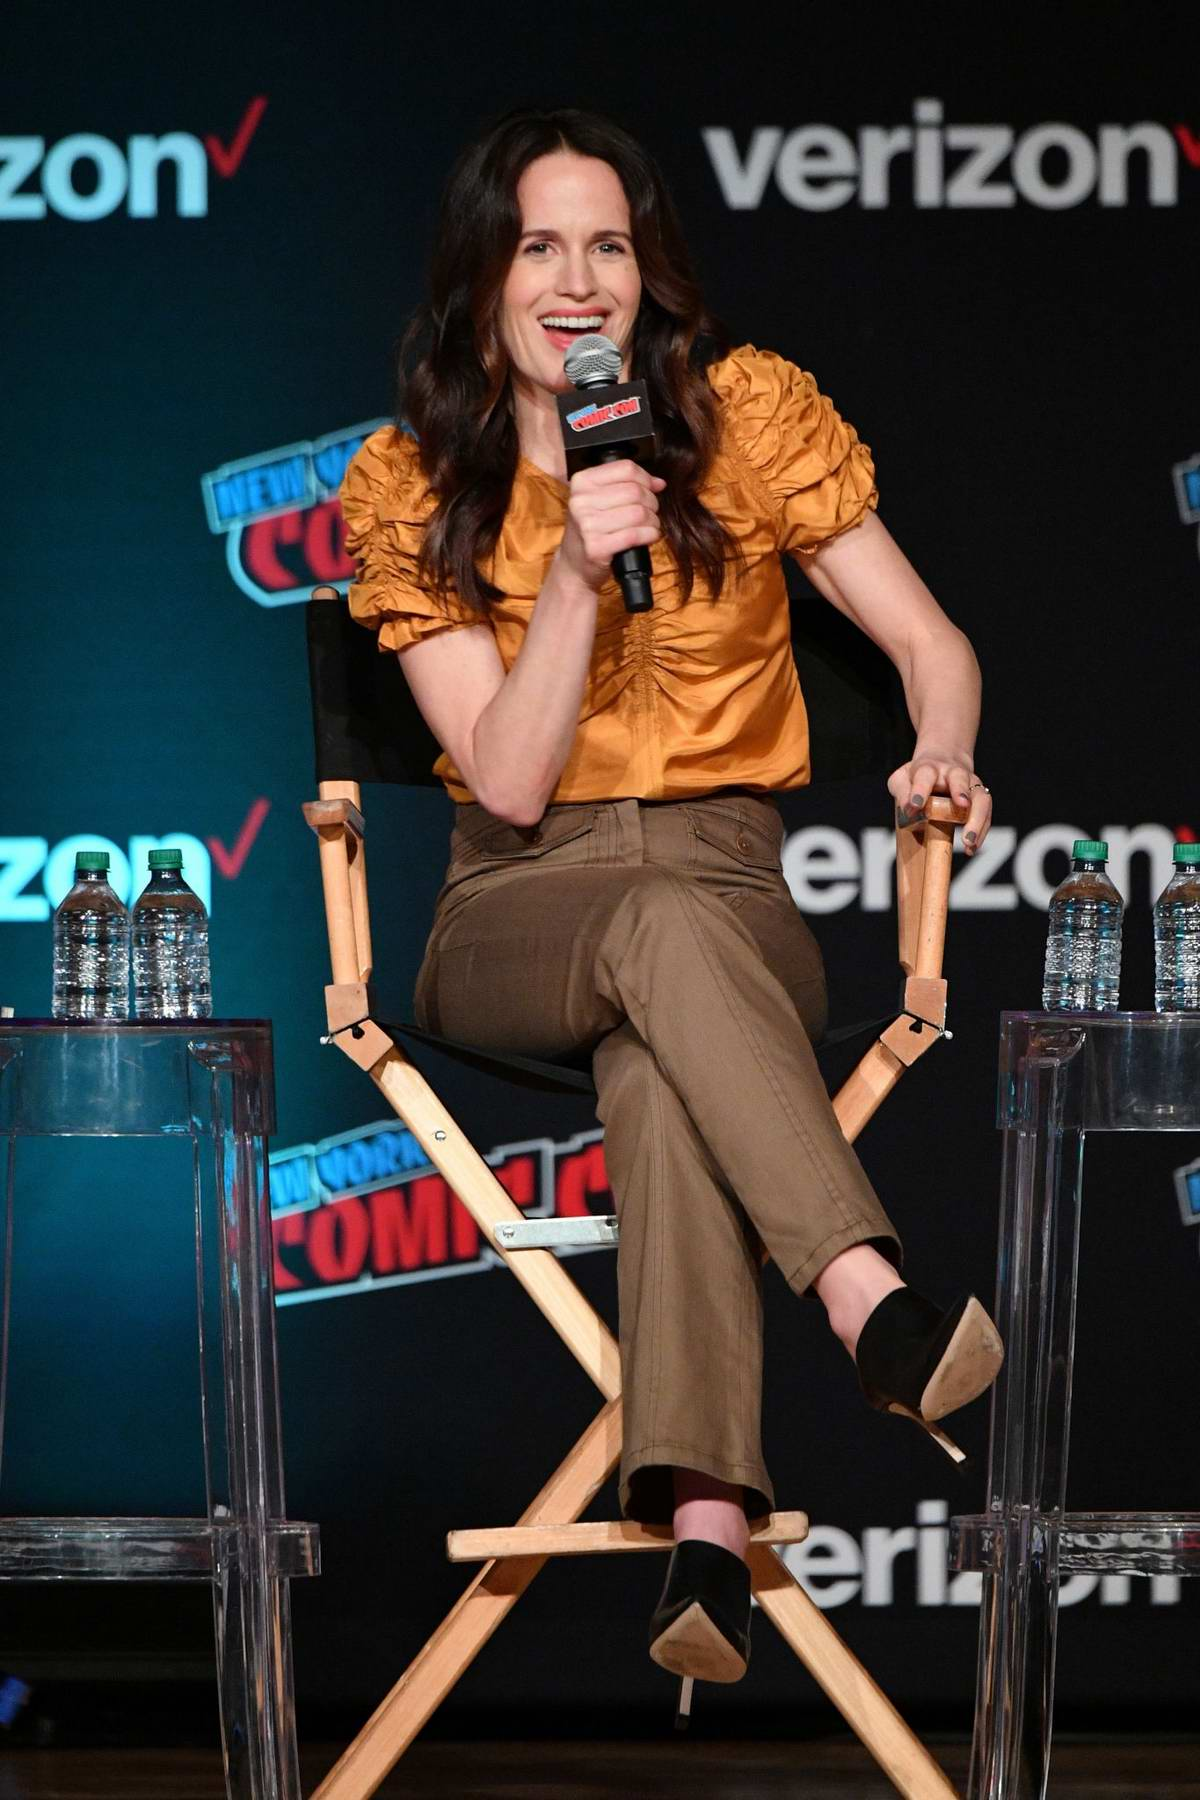 Elizabeth Reaser speaks onstage at the Netflix & Chills Panel during New York Comic Con 2018 (NYCC 2018) in New York City